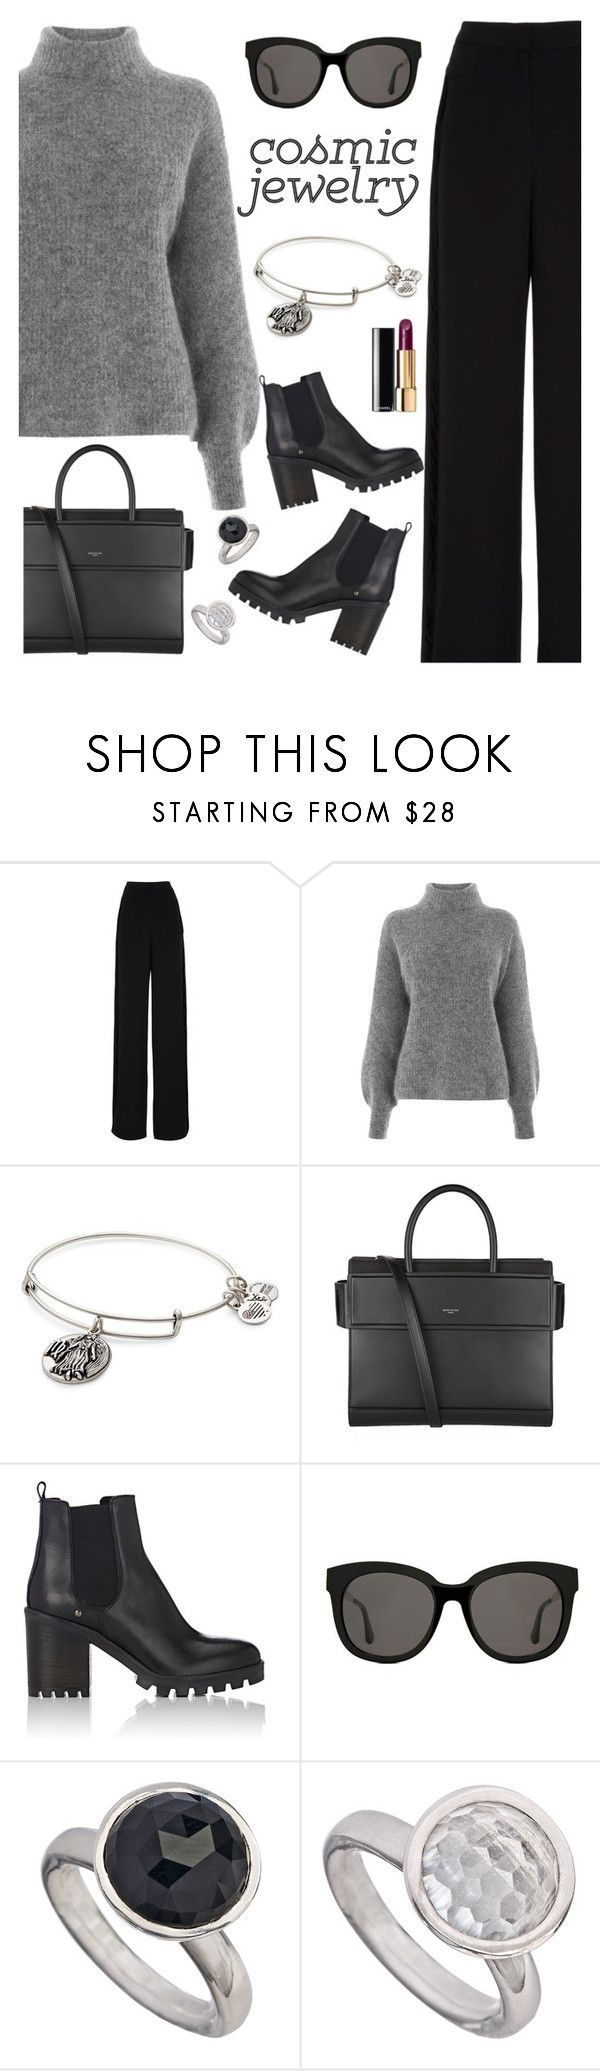 """""""Cosmic Jewelry"""" by rasa-j ❤ liked on Polyvore featuring Rochas, Warehouse, Alex and Ani, Givenchy, Barneys New York, Gentle Monster, Chanel, womensFashion and cosmicjewelry"""